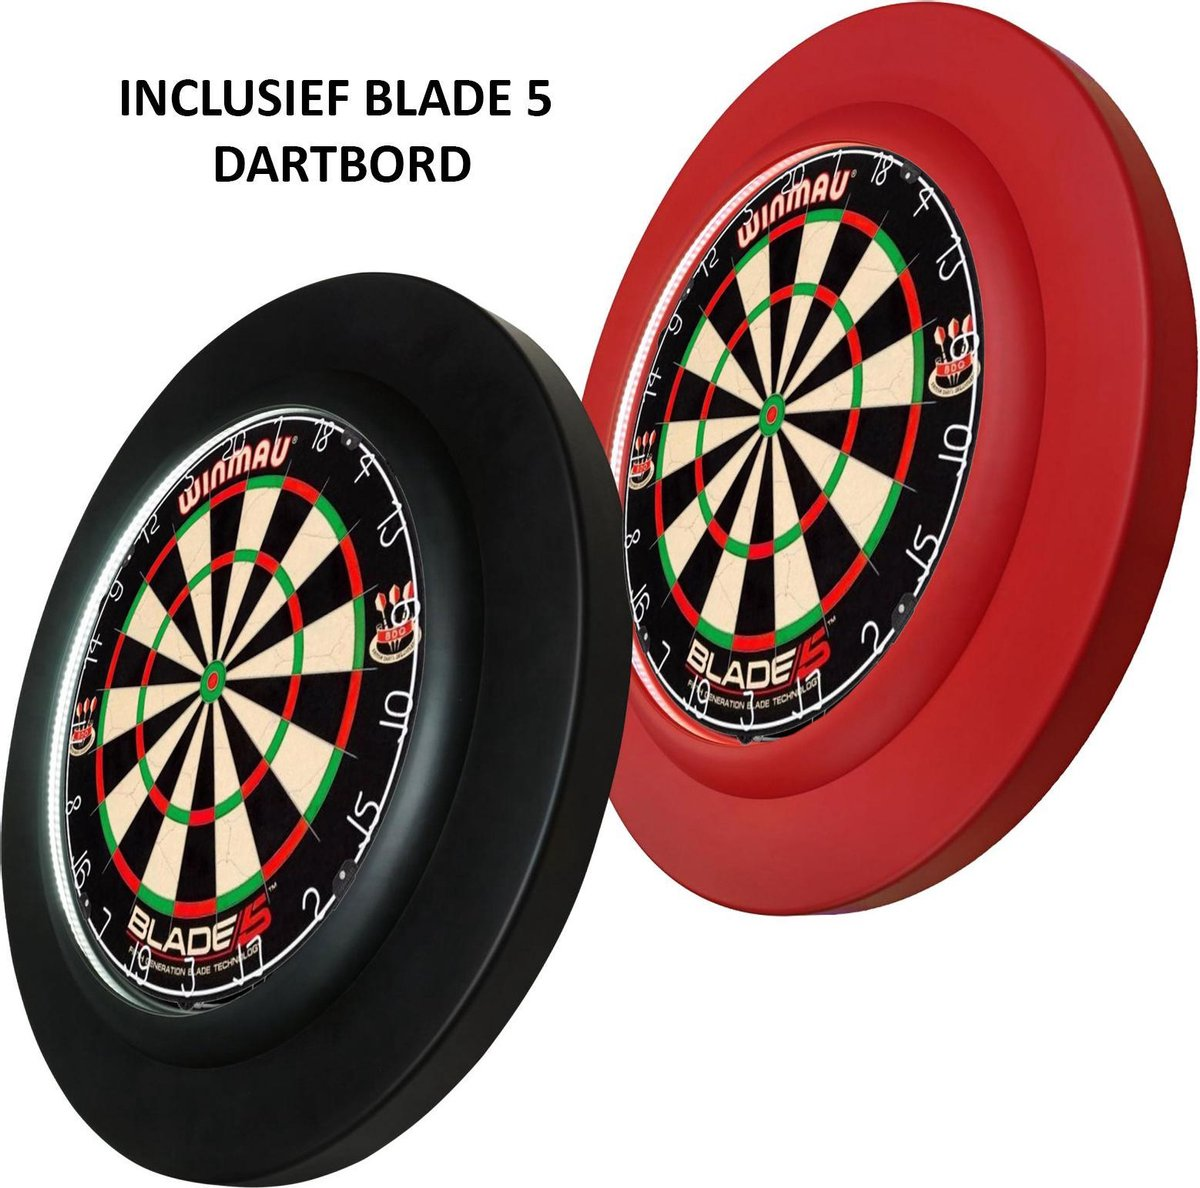 Dragon darts PU rubber LED Lightning - dartbord verlichting - Winmau Blade 5 - zwart